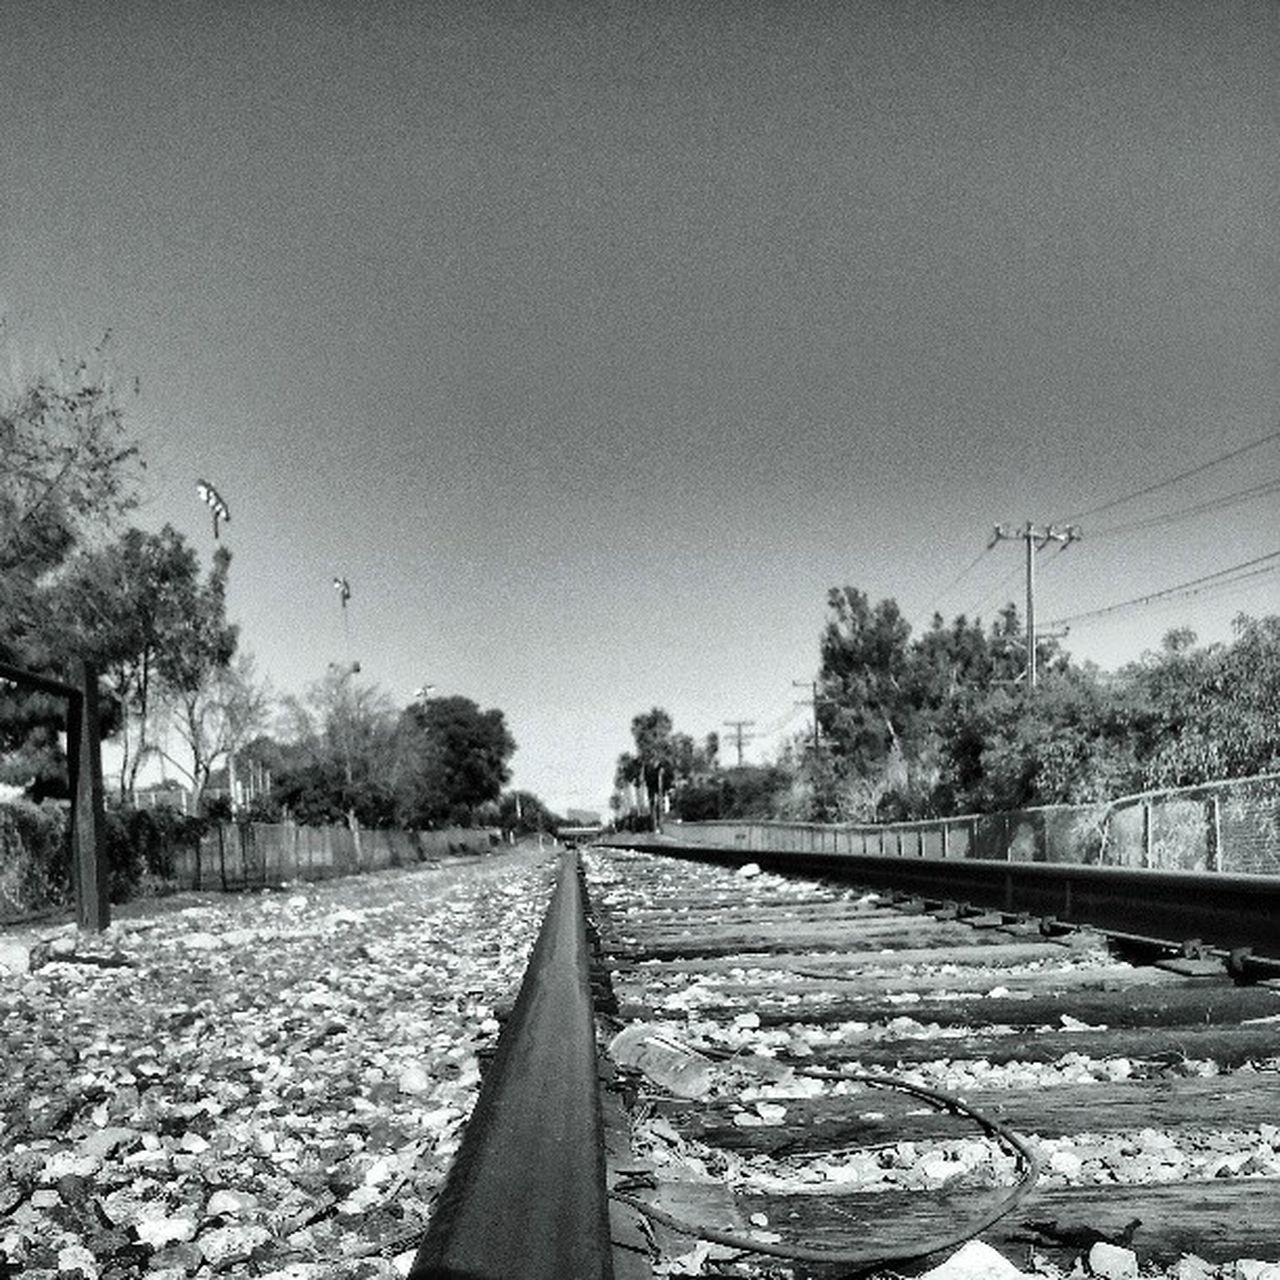 Trainspotting Jj  Losangeles Blackandwhite Bnw Fortheloveofblackandwhite Monochrome Black&white LiveanddirectfromLosAngeles Railroad Railroad Track